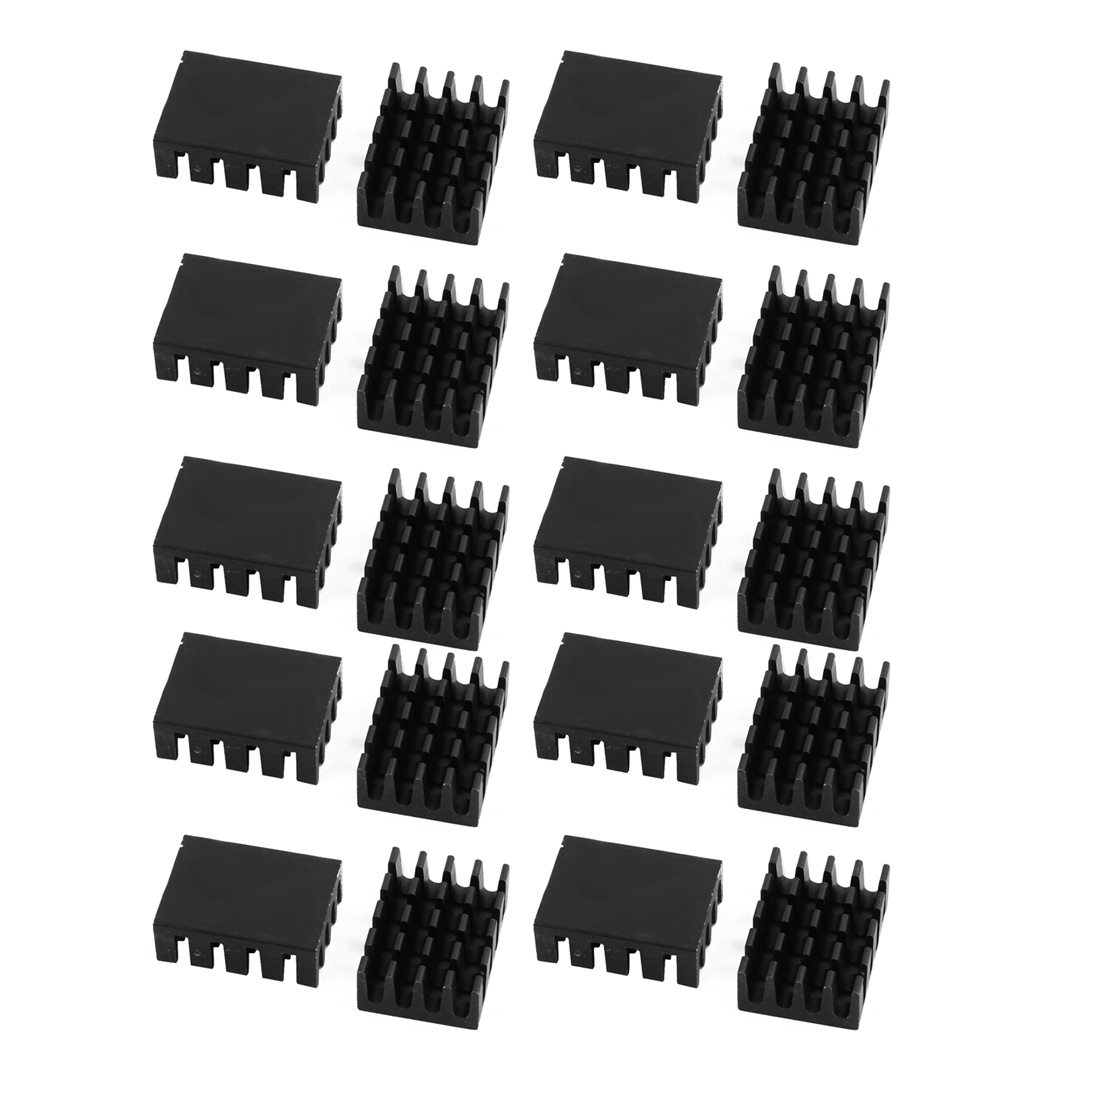 20pcs 20mmx14mmx7mm Black Aluminum Heatsink Heat Diffuse Cooling Fin